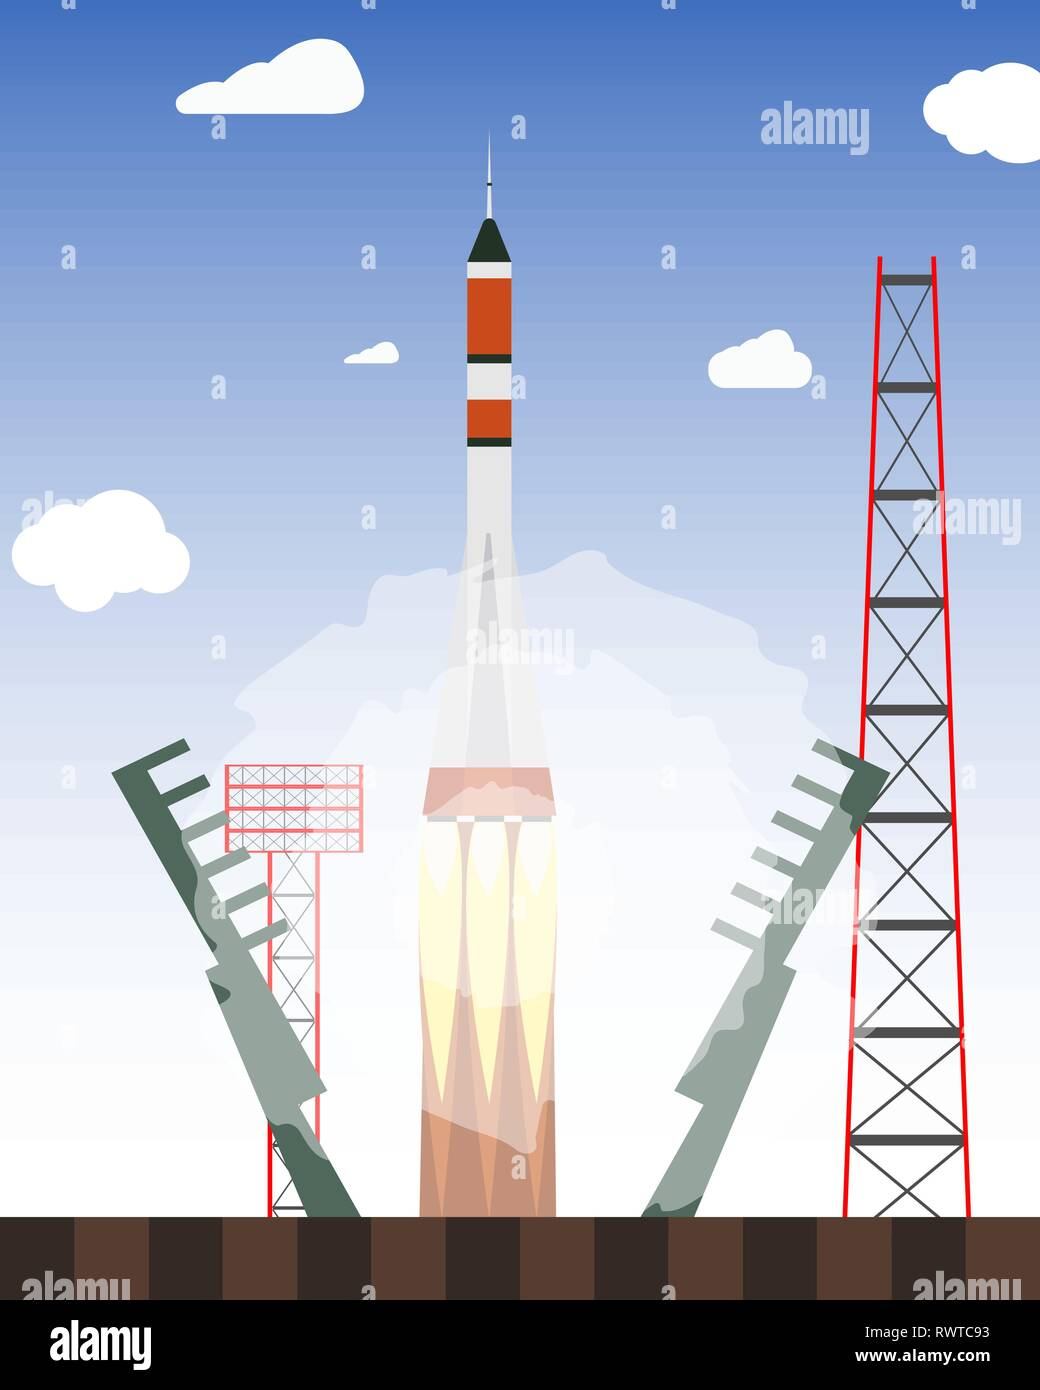 Start rocket from the spaceport. Launch raekty in space. Vector illustration - Stock Image